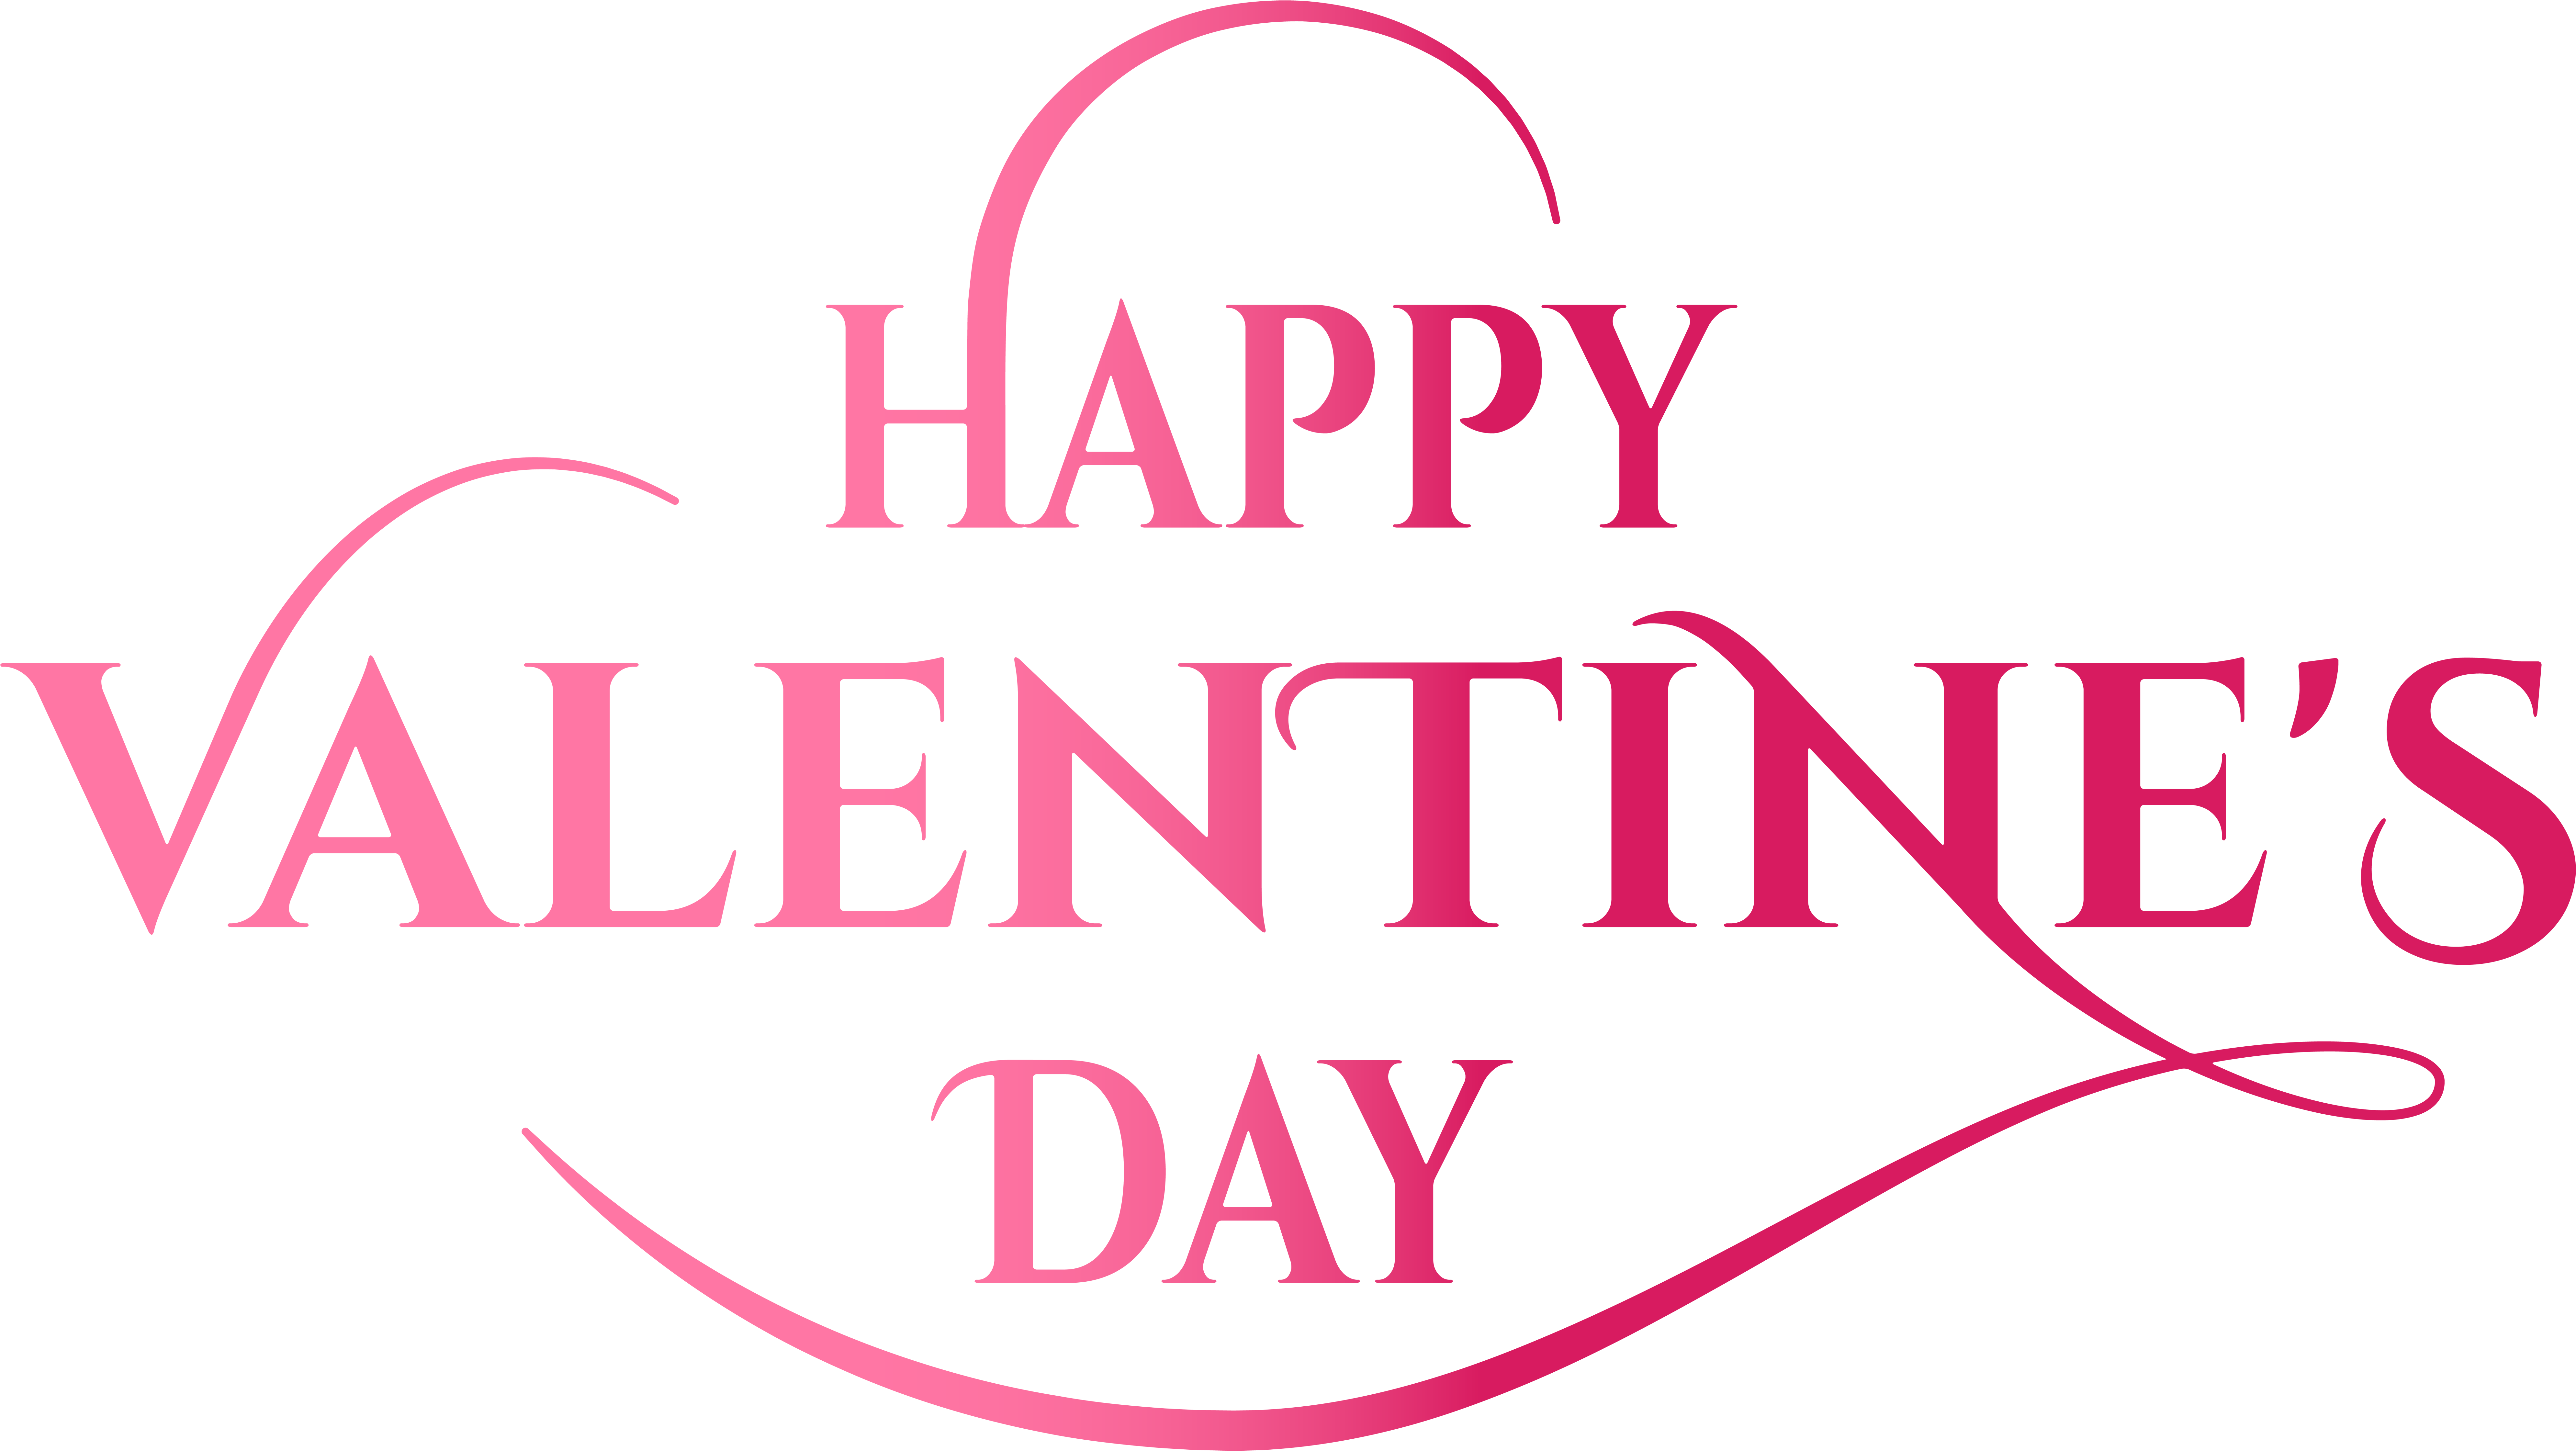 Download Valentine's Day Pink Text Png I #469056 - PNG ...